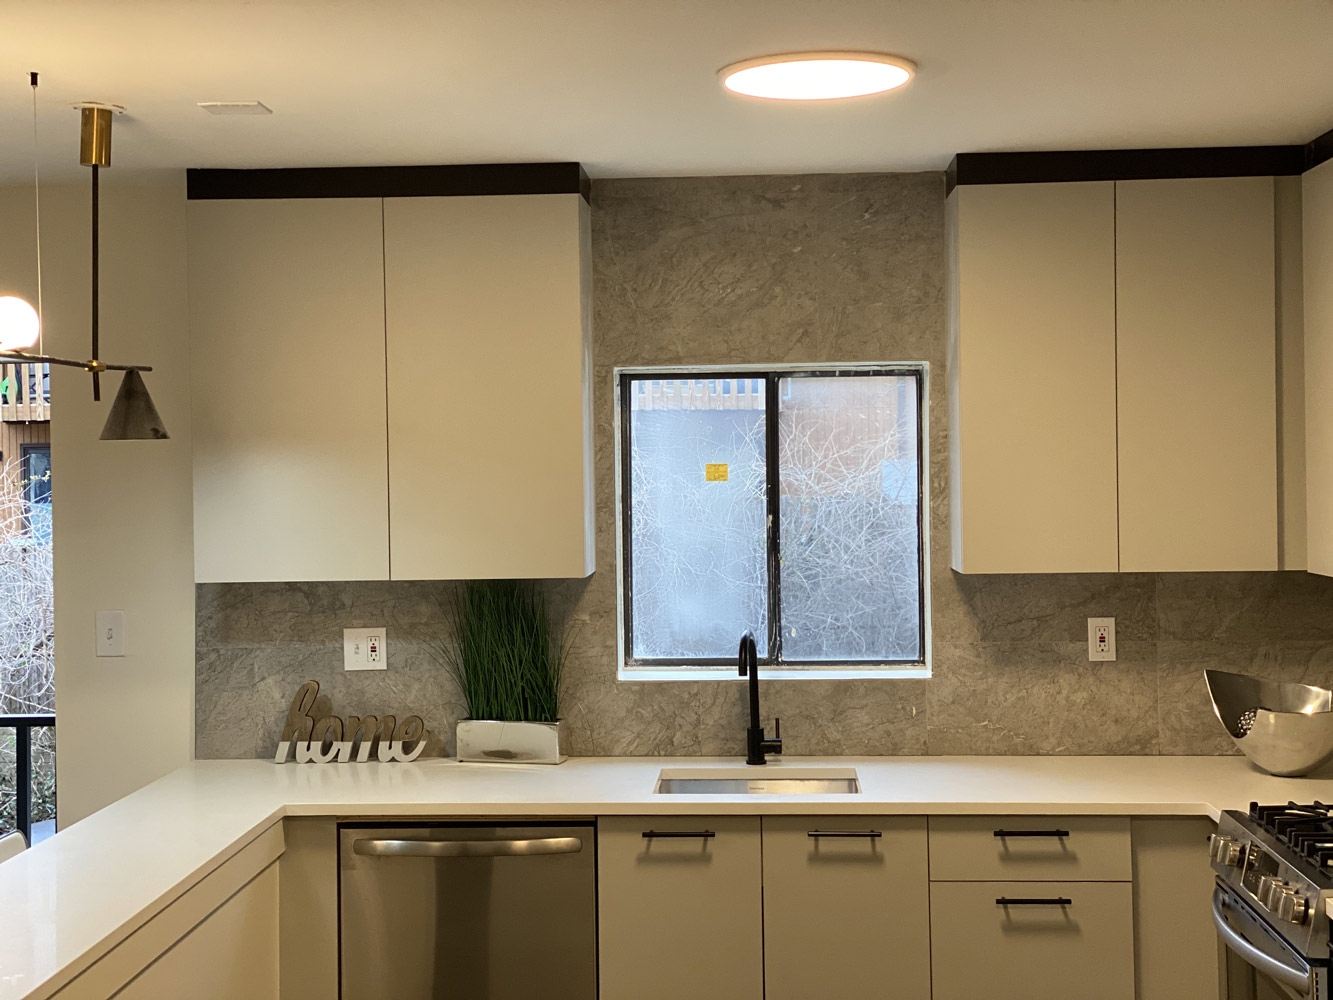 Stainless Steel Appliances at Riverview at Nyack Apartments in Nyack, New York